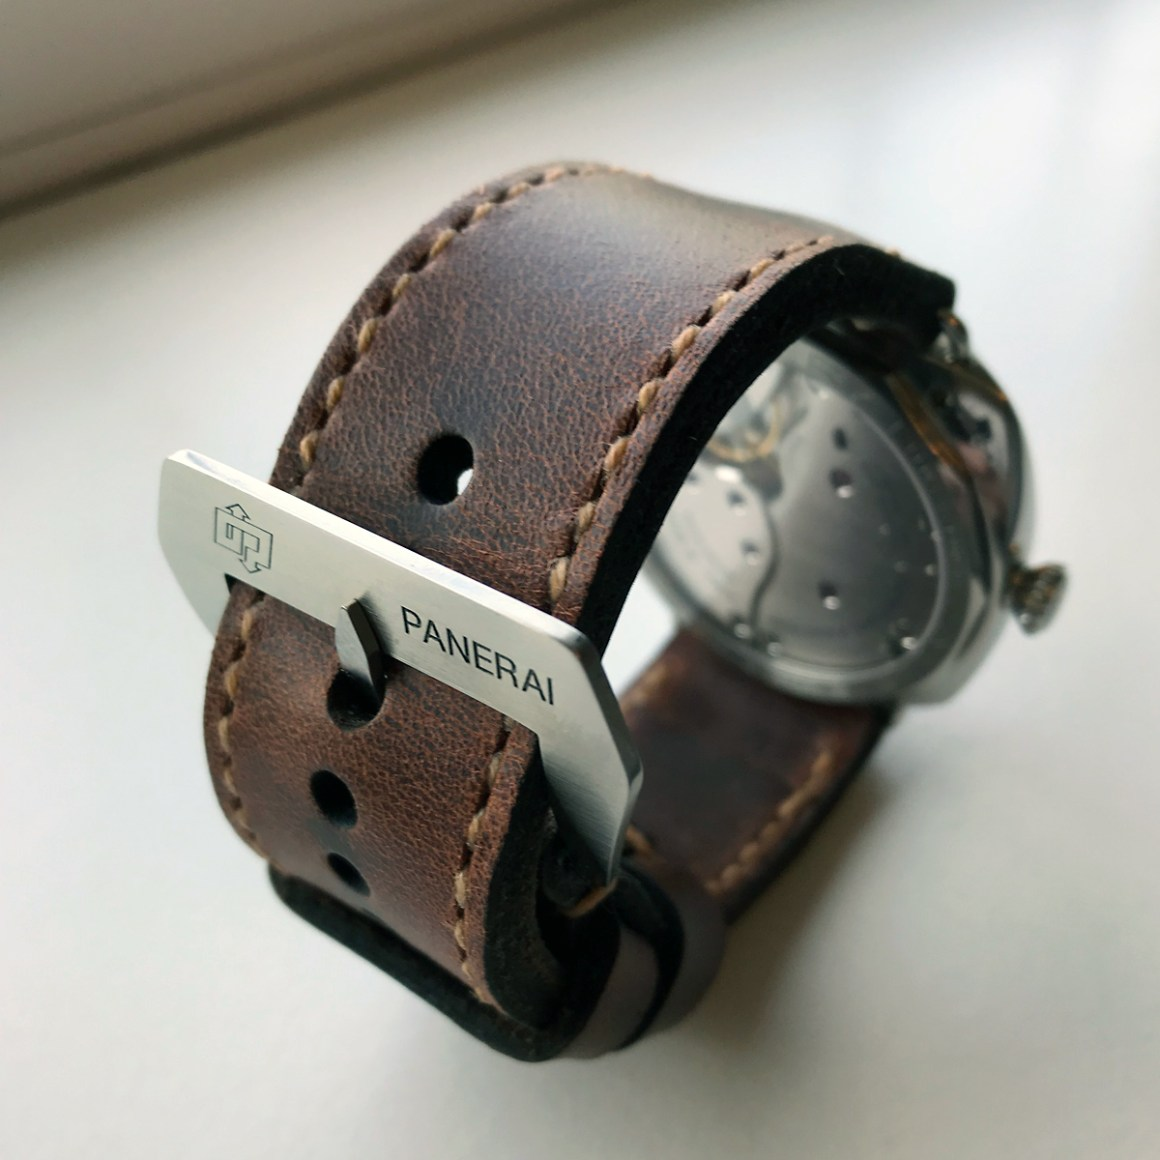 Panerai 424 on Phantom leather with butterscotch stitching. © Terry Wright